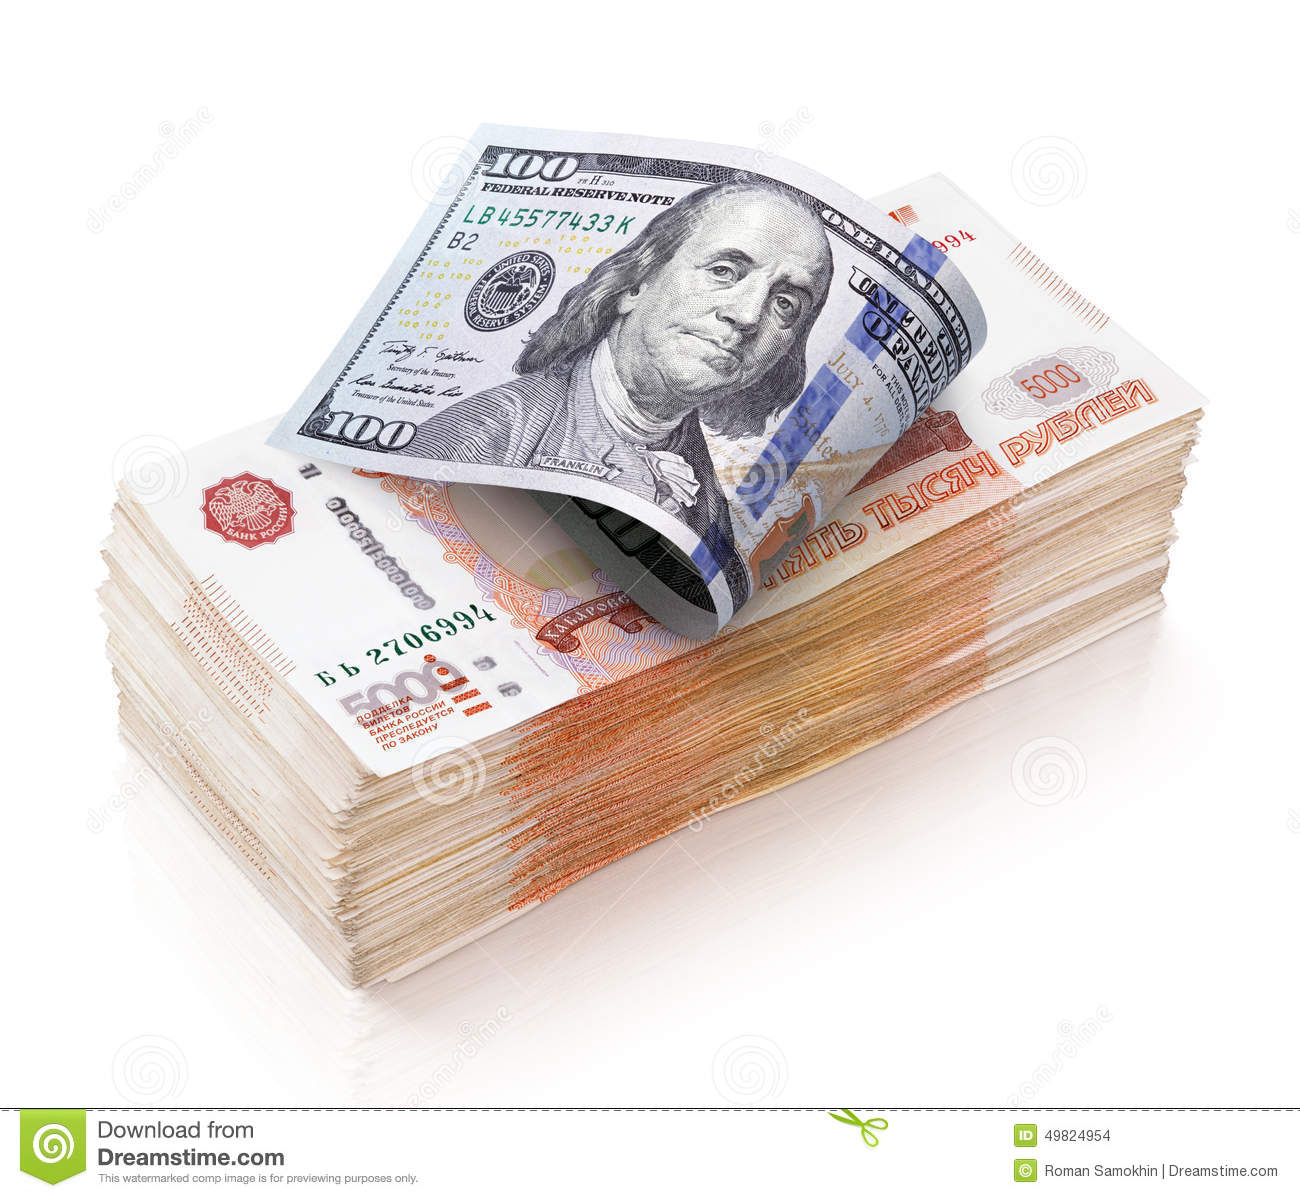 One thousand dollar bill stock photo for Build a house for under 5000 dollars